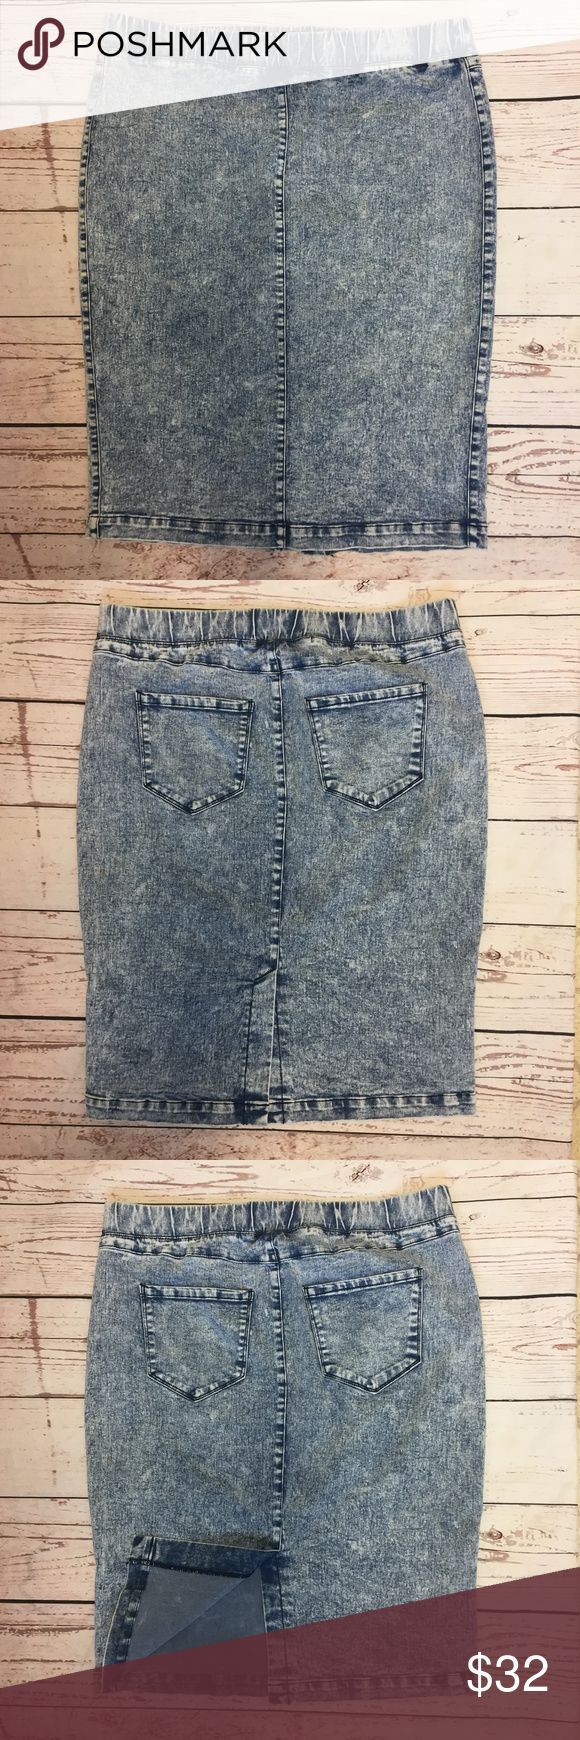 """-Boom Boom Jeans- Acid Wash Stretch Denim Skirt Great Acid Wash Denim Skirt by Boom Boom Jeans Size Extra Large 74% Cotton; 23% Polyester; 3% Spandex Machine Wash Waist: 34"""" Hip: 40"""" Total Length: 24"""" Condition: Gently used condition; no stains, holes or tears Please review pictures for product details.  Thank you for looking! Boom Boom Jeans Skirts Pencil"""